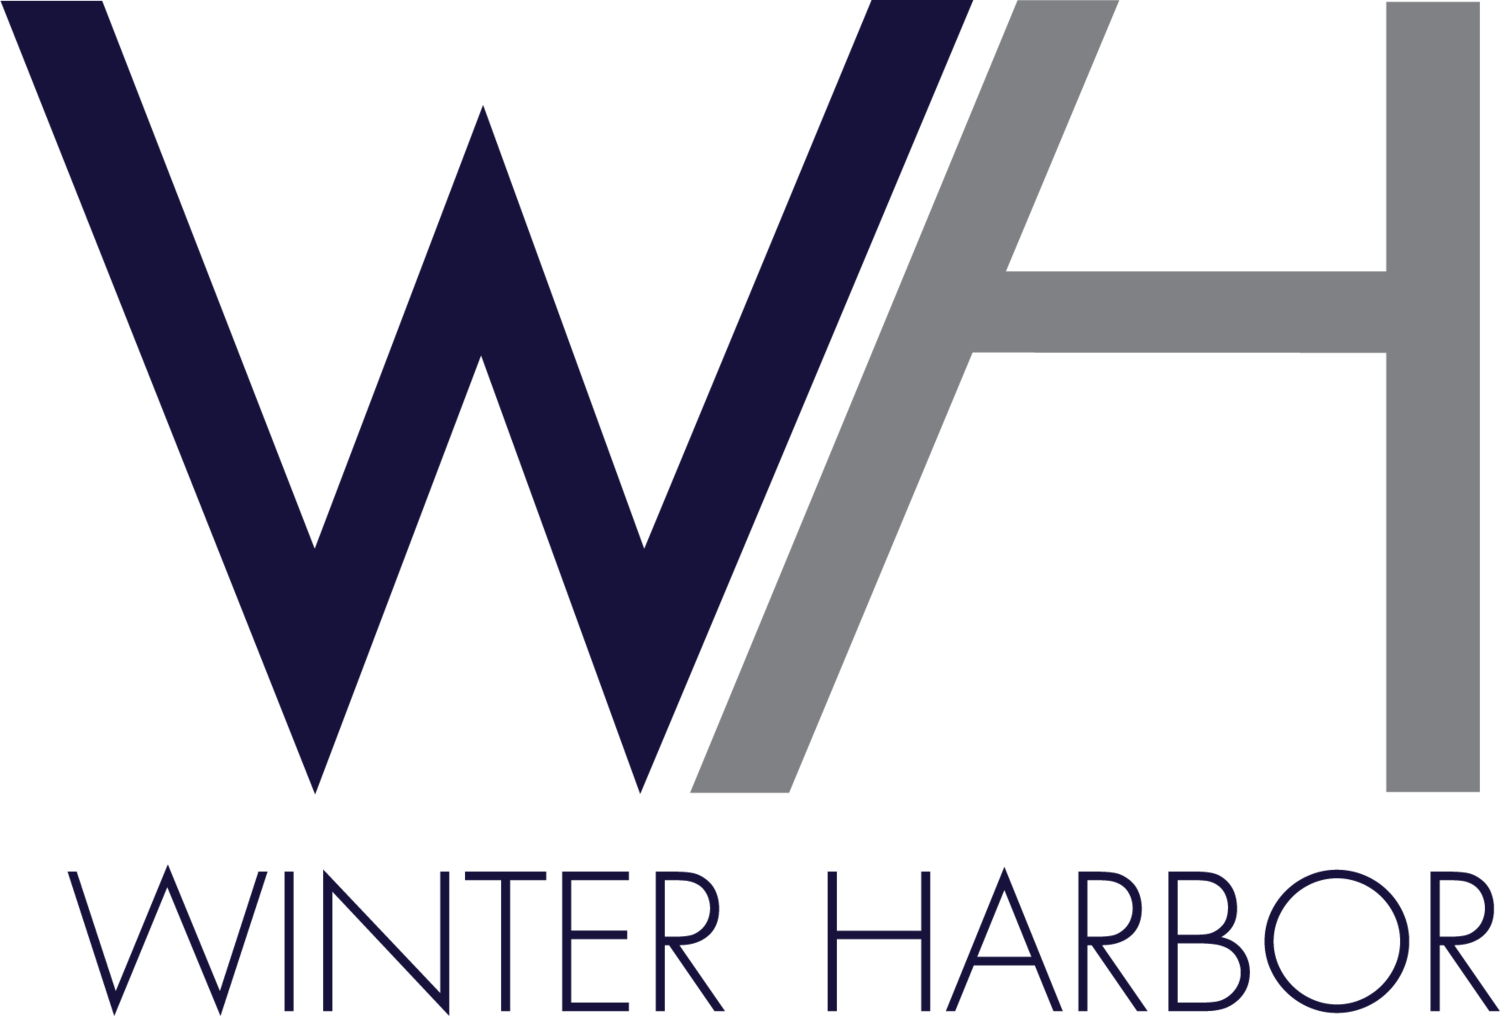 Winter Harbor LLC